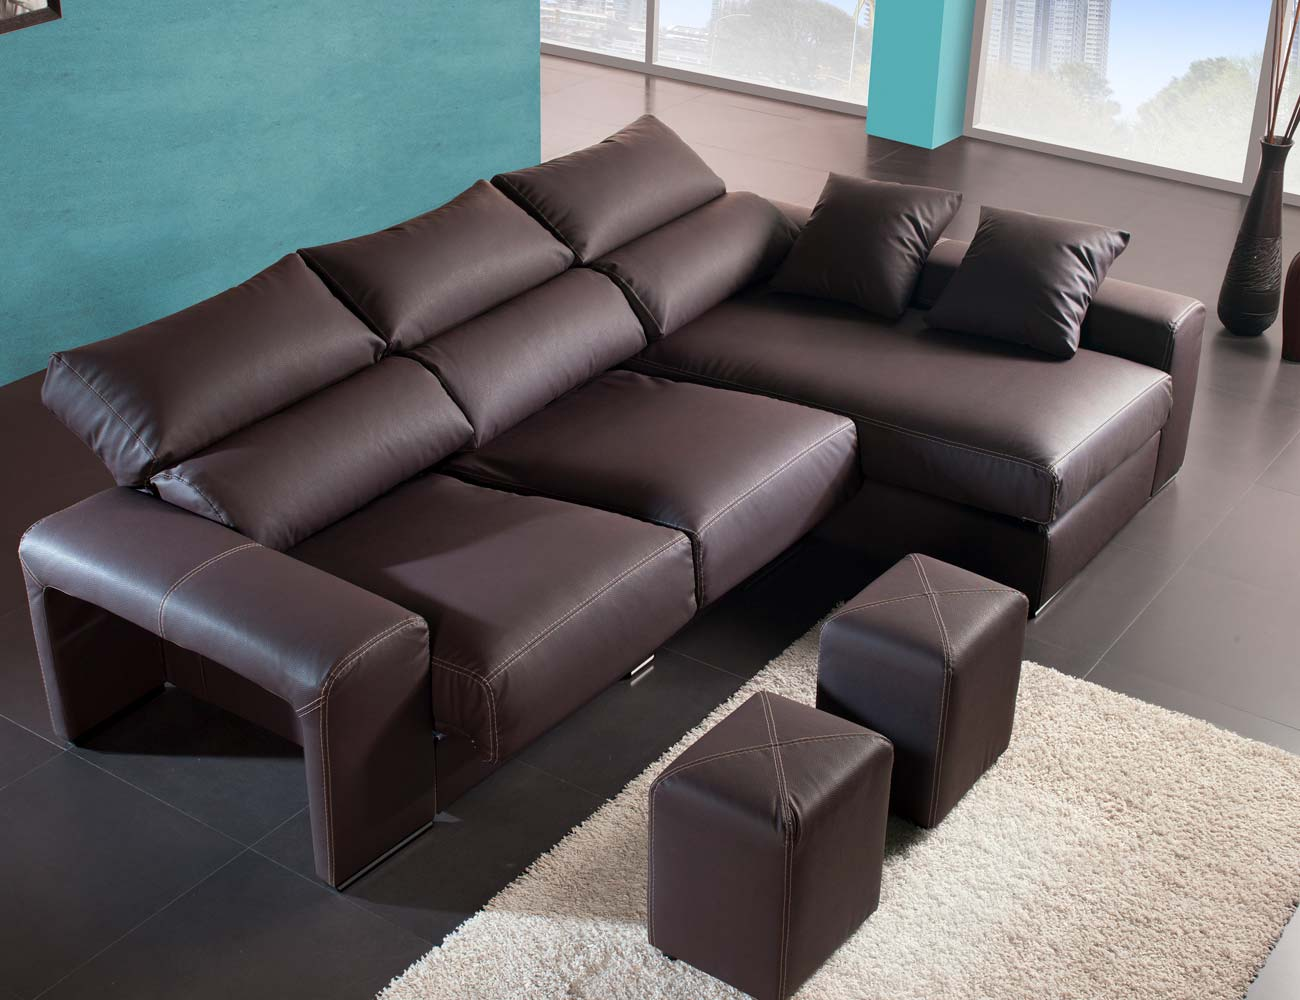 Sofa chaiselongue moderno polipiel chocolate poufs taburetes19